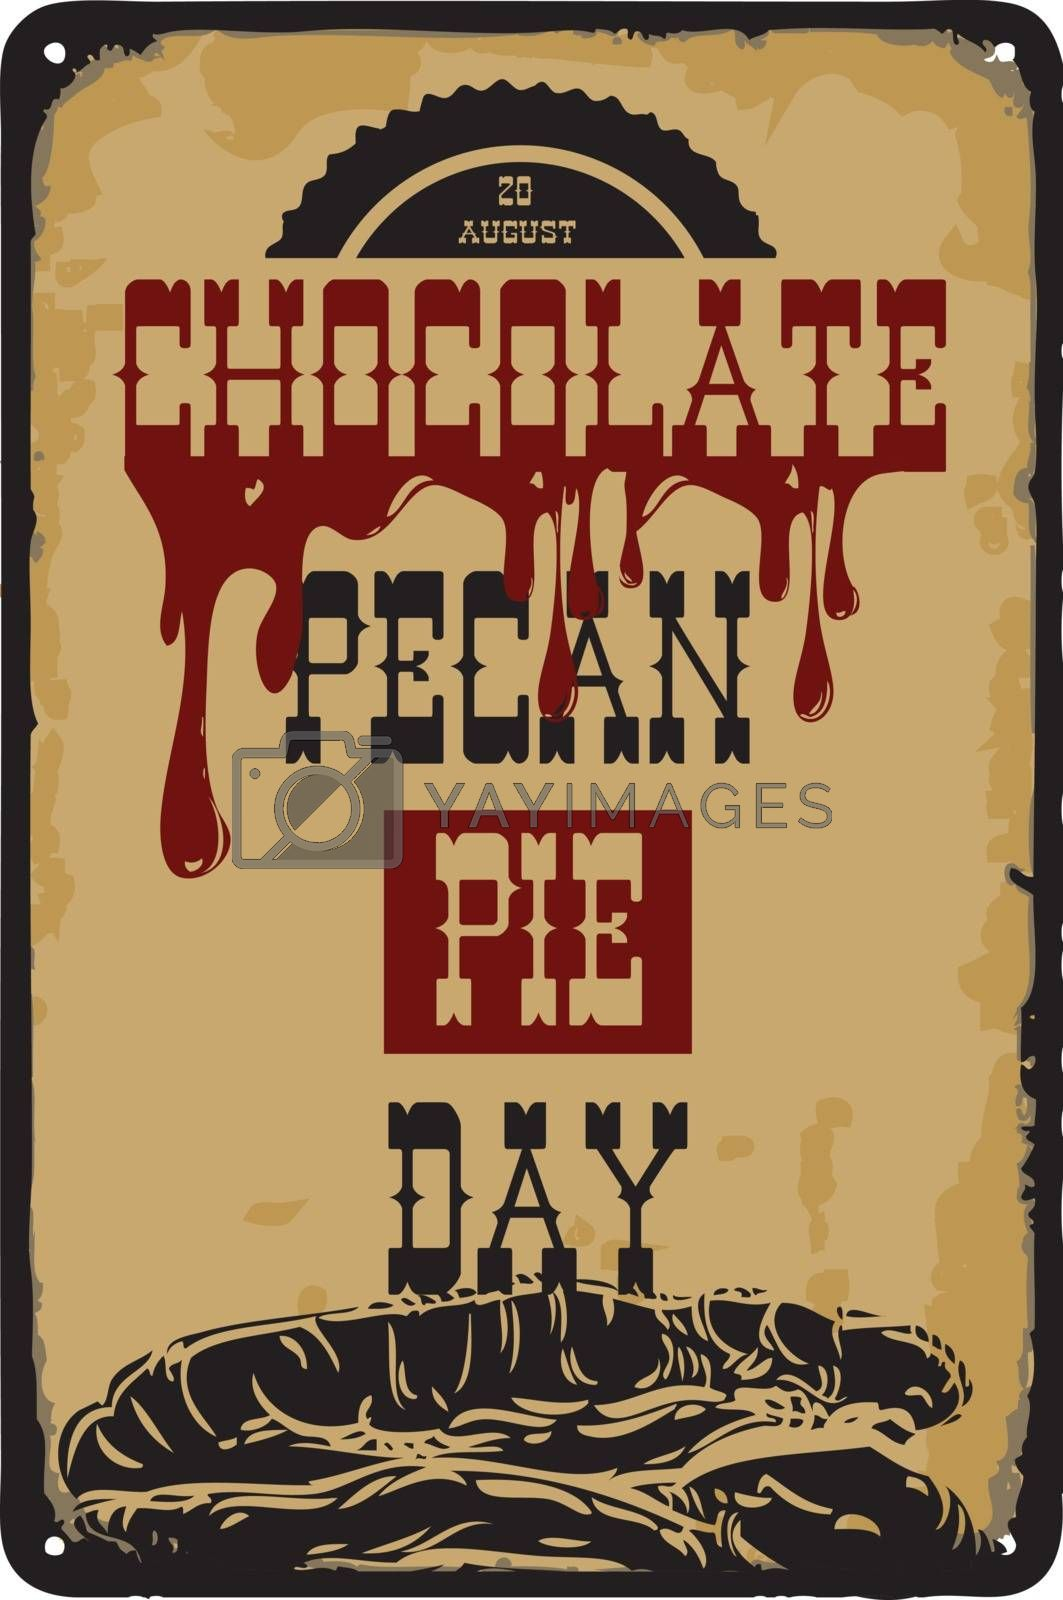 Old vintage sign to the date - Chocolate pecan pie day. Vector illustration for the holiday and event in august.